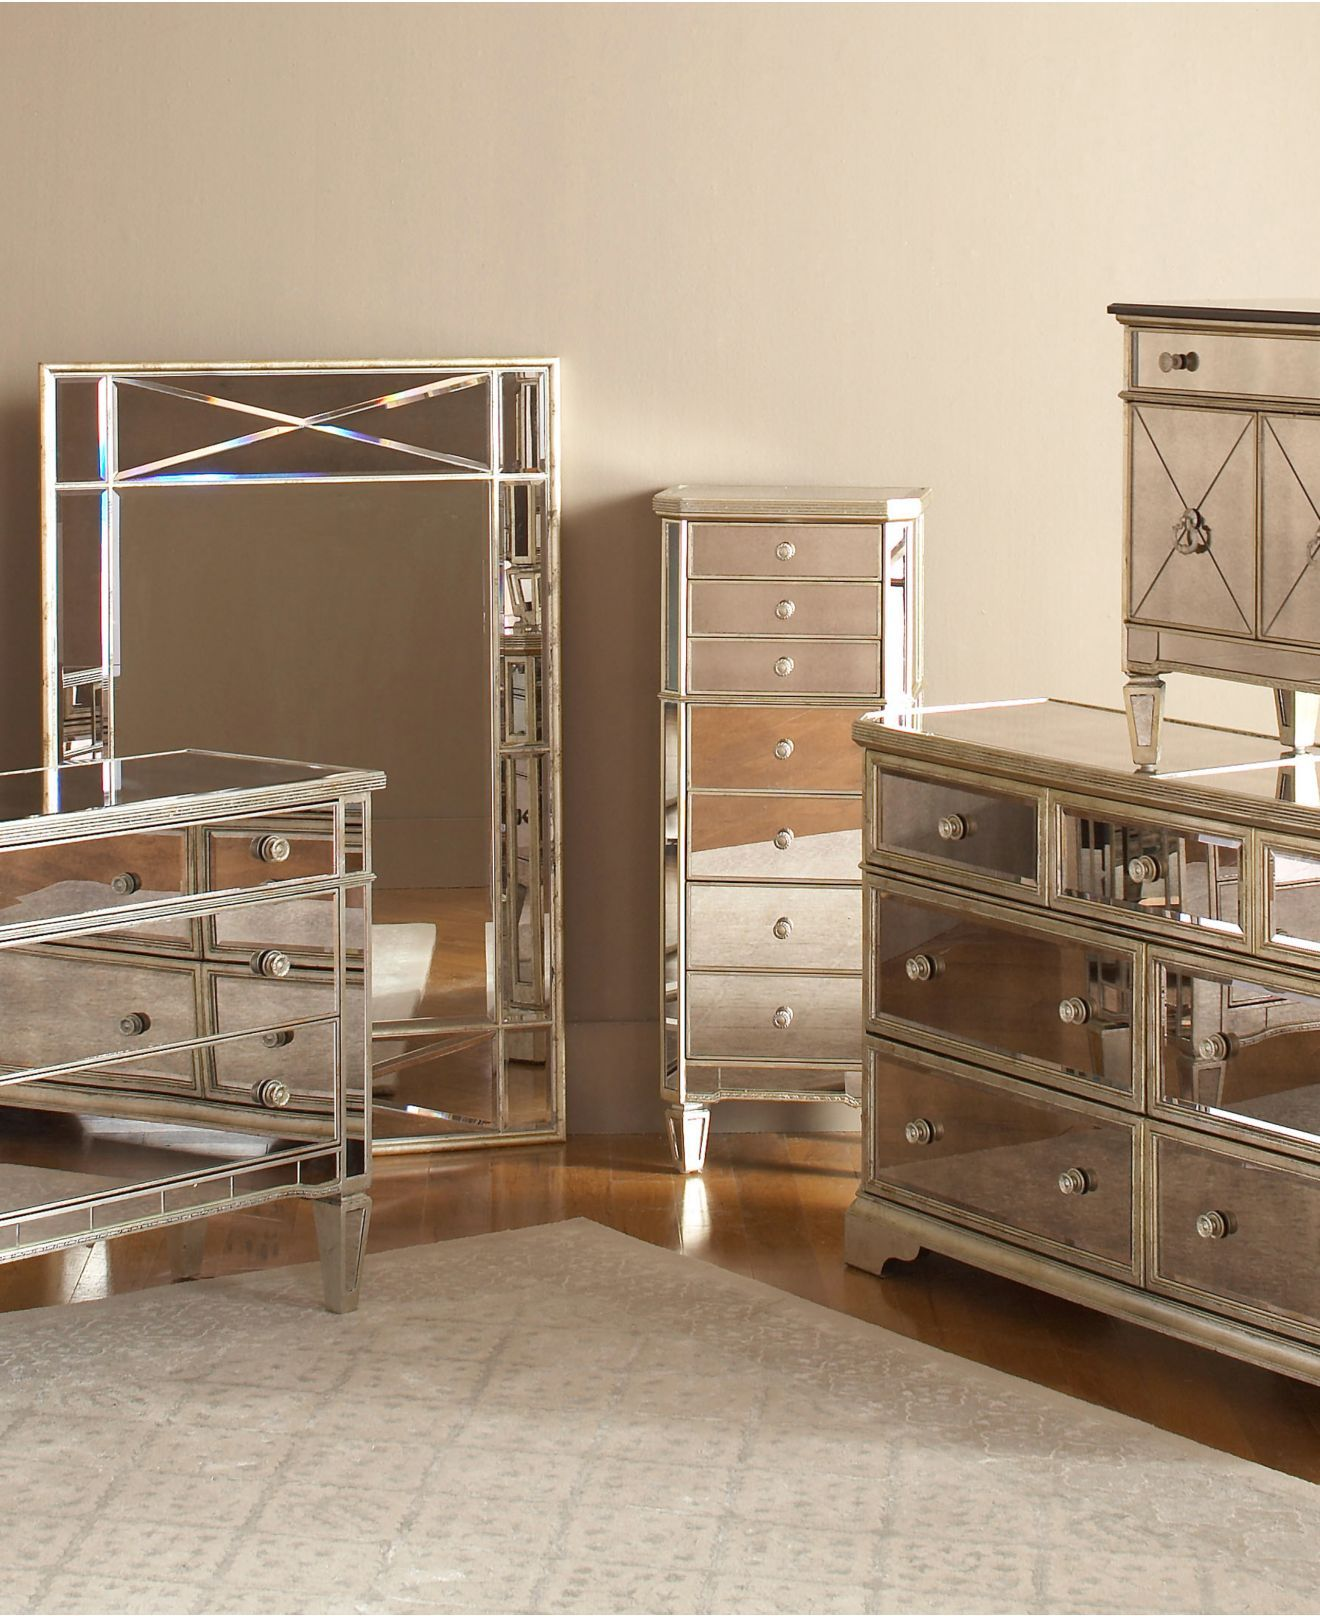 Marais mirrored furniture collection furniture sets mirrored bedroom furniture sets and bedrooms Macy s home bedroom furniture